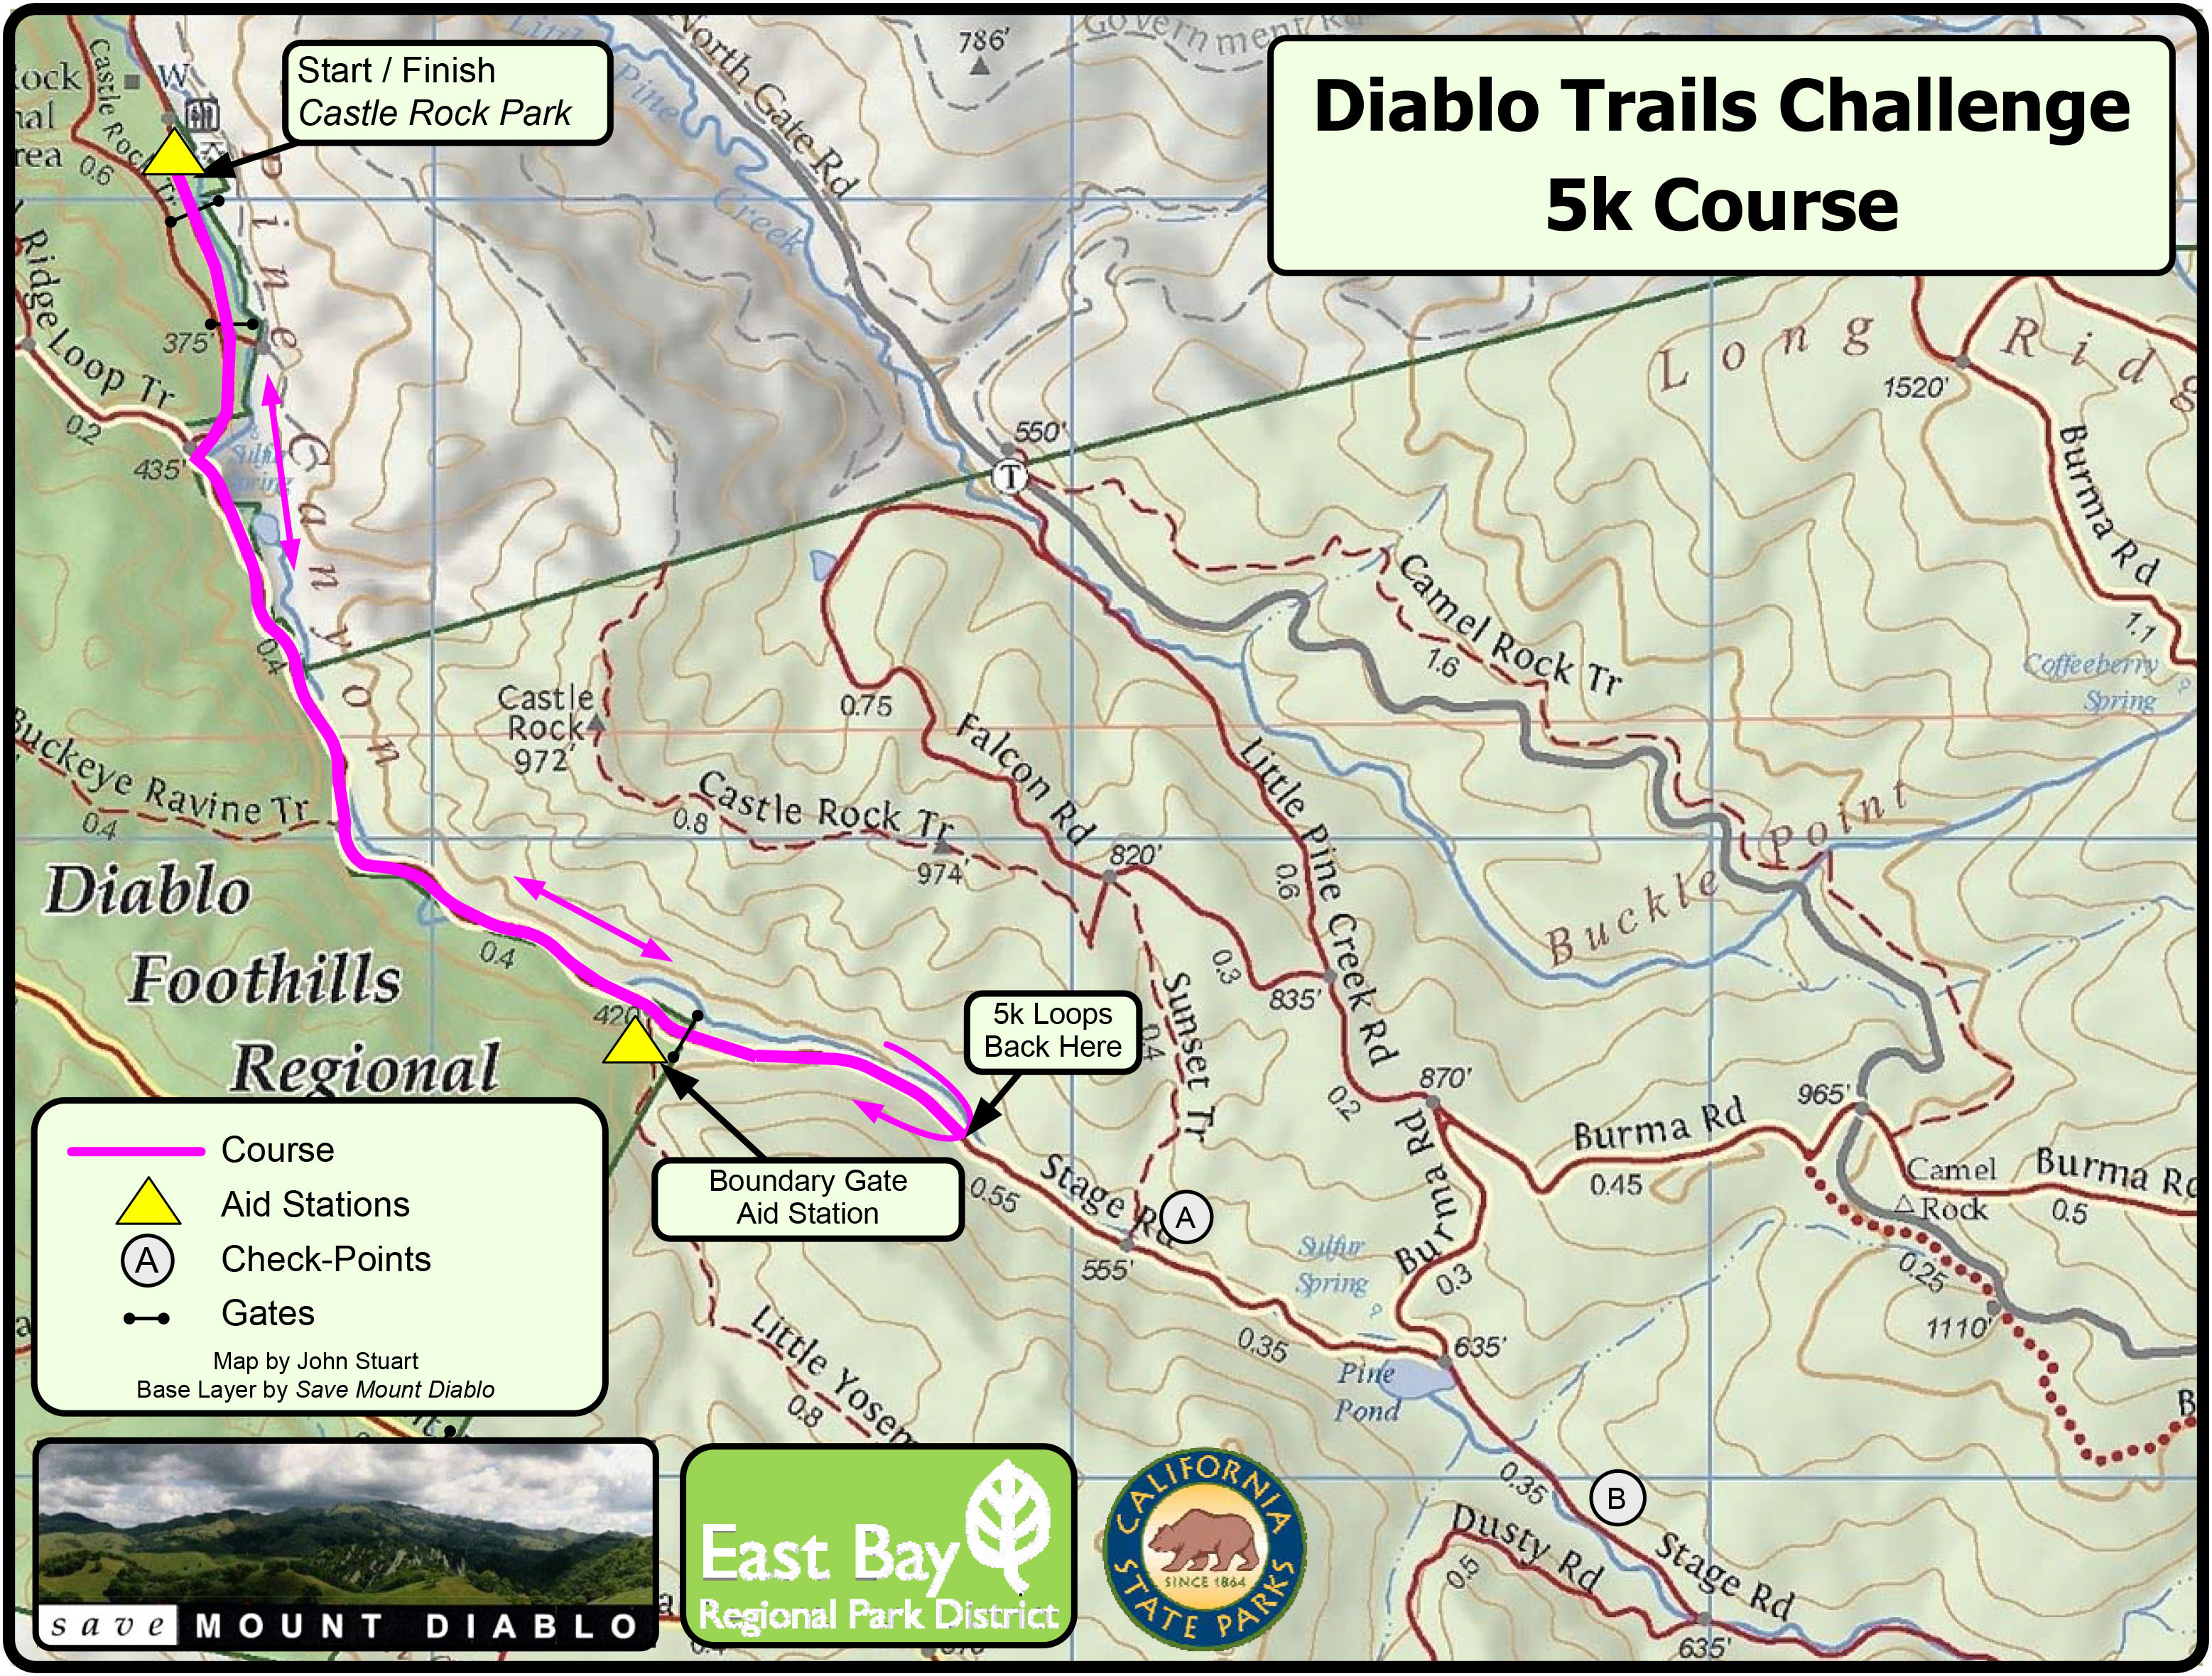 DTC5Kcourse map